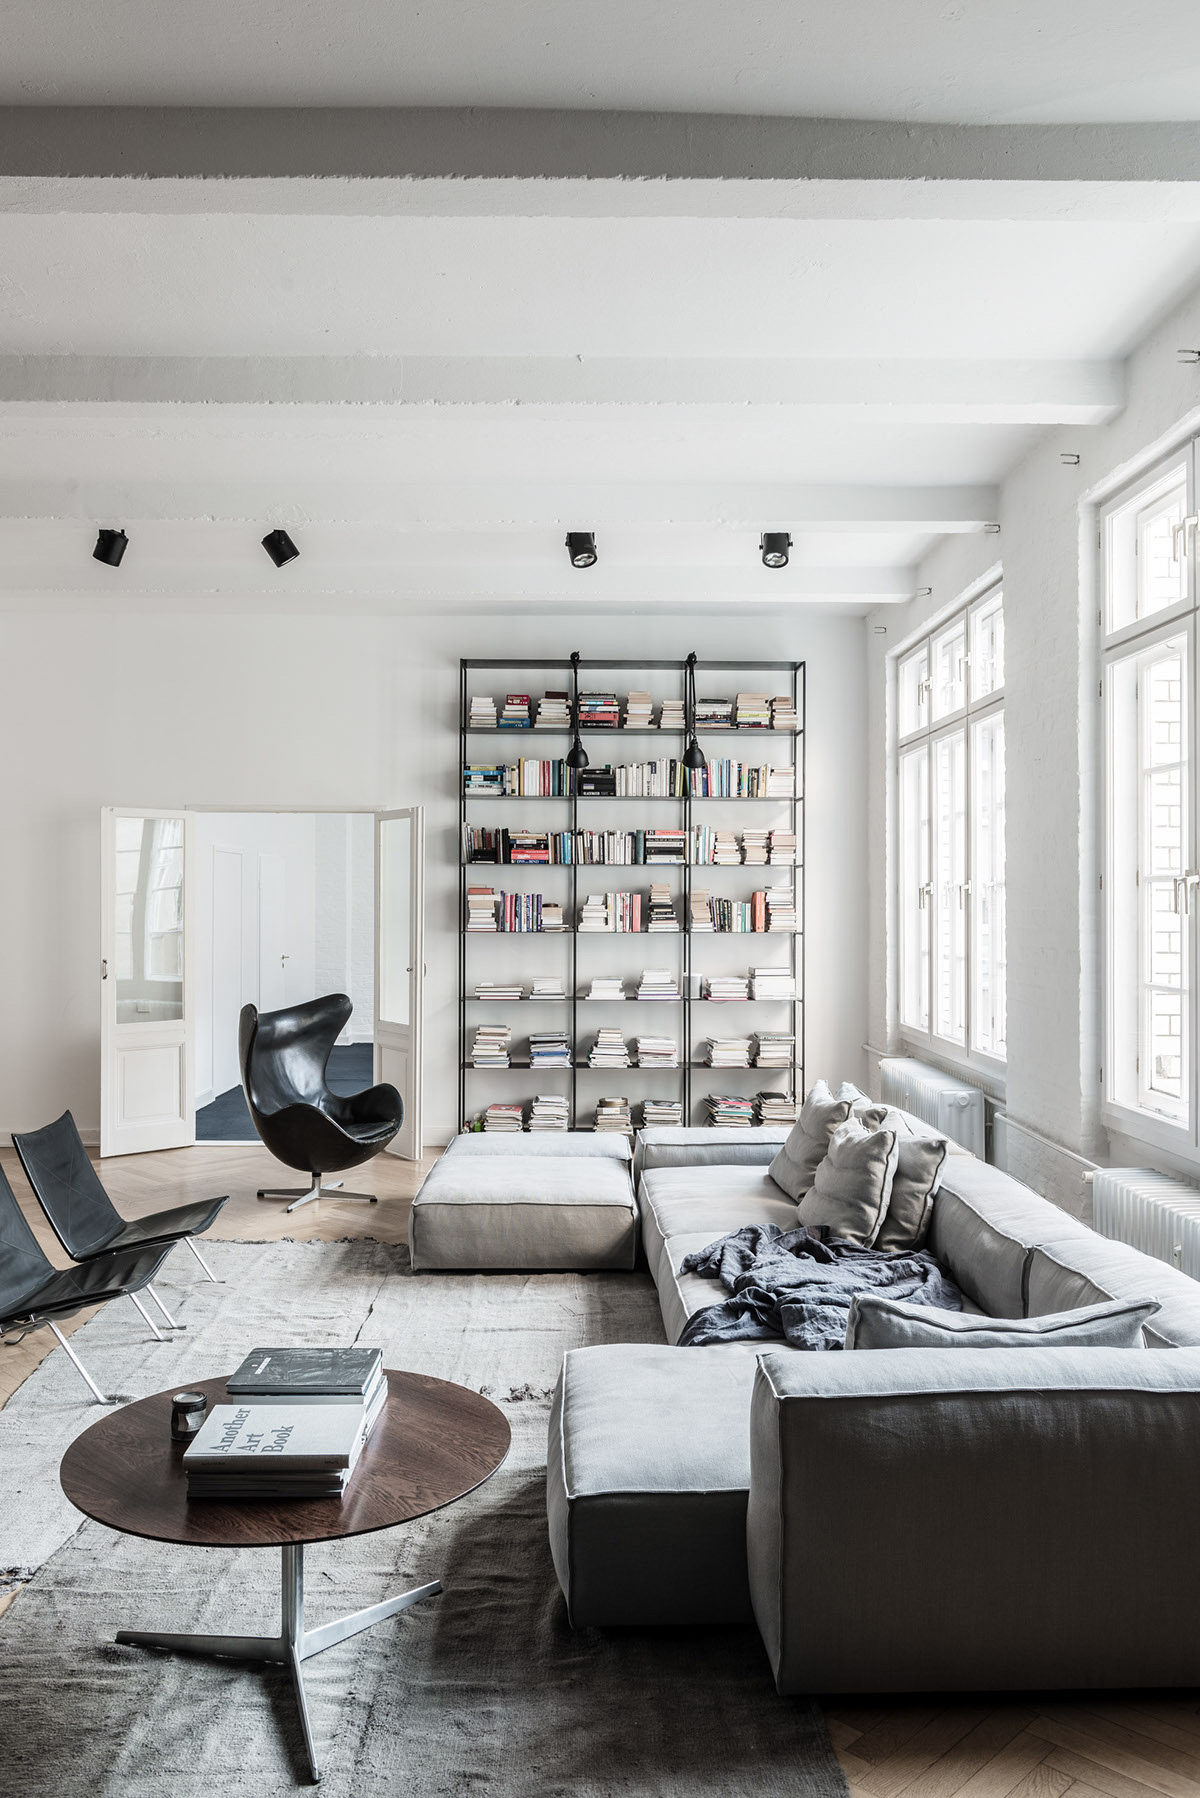 Loft Apartment & Studio in Berlin by Annabell Kutucu | Yellowtrace